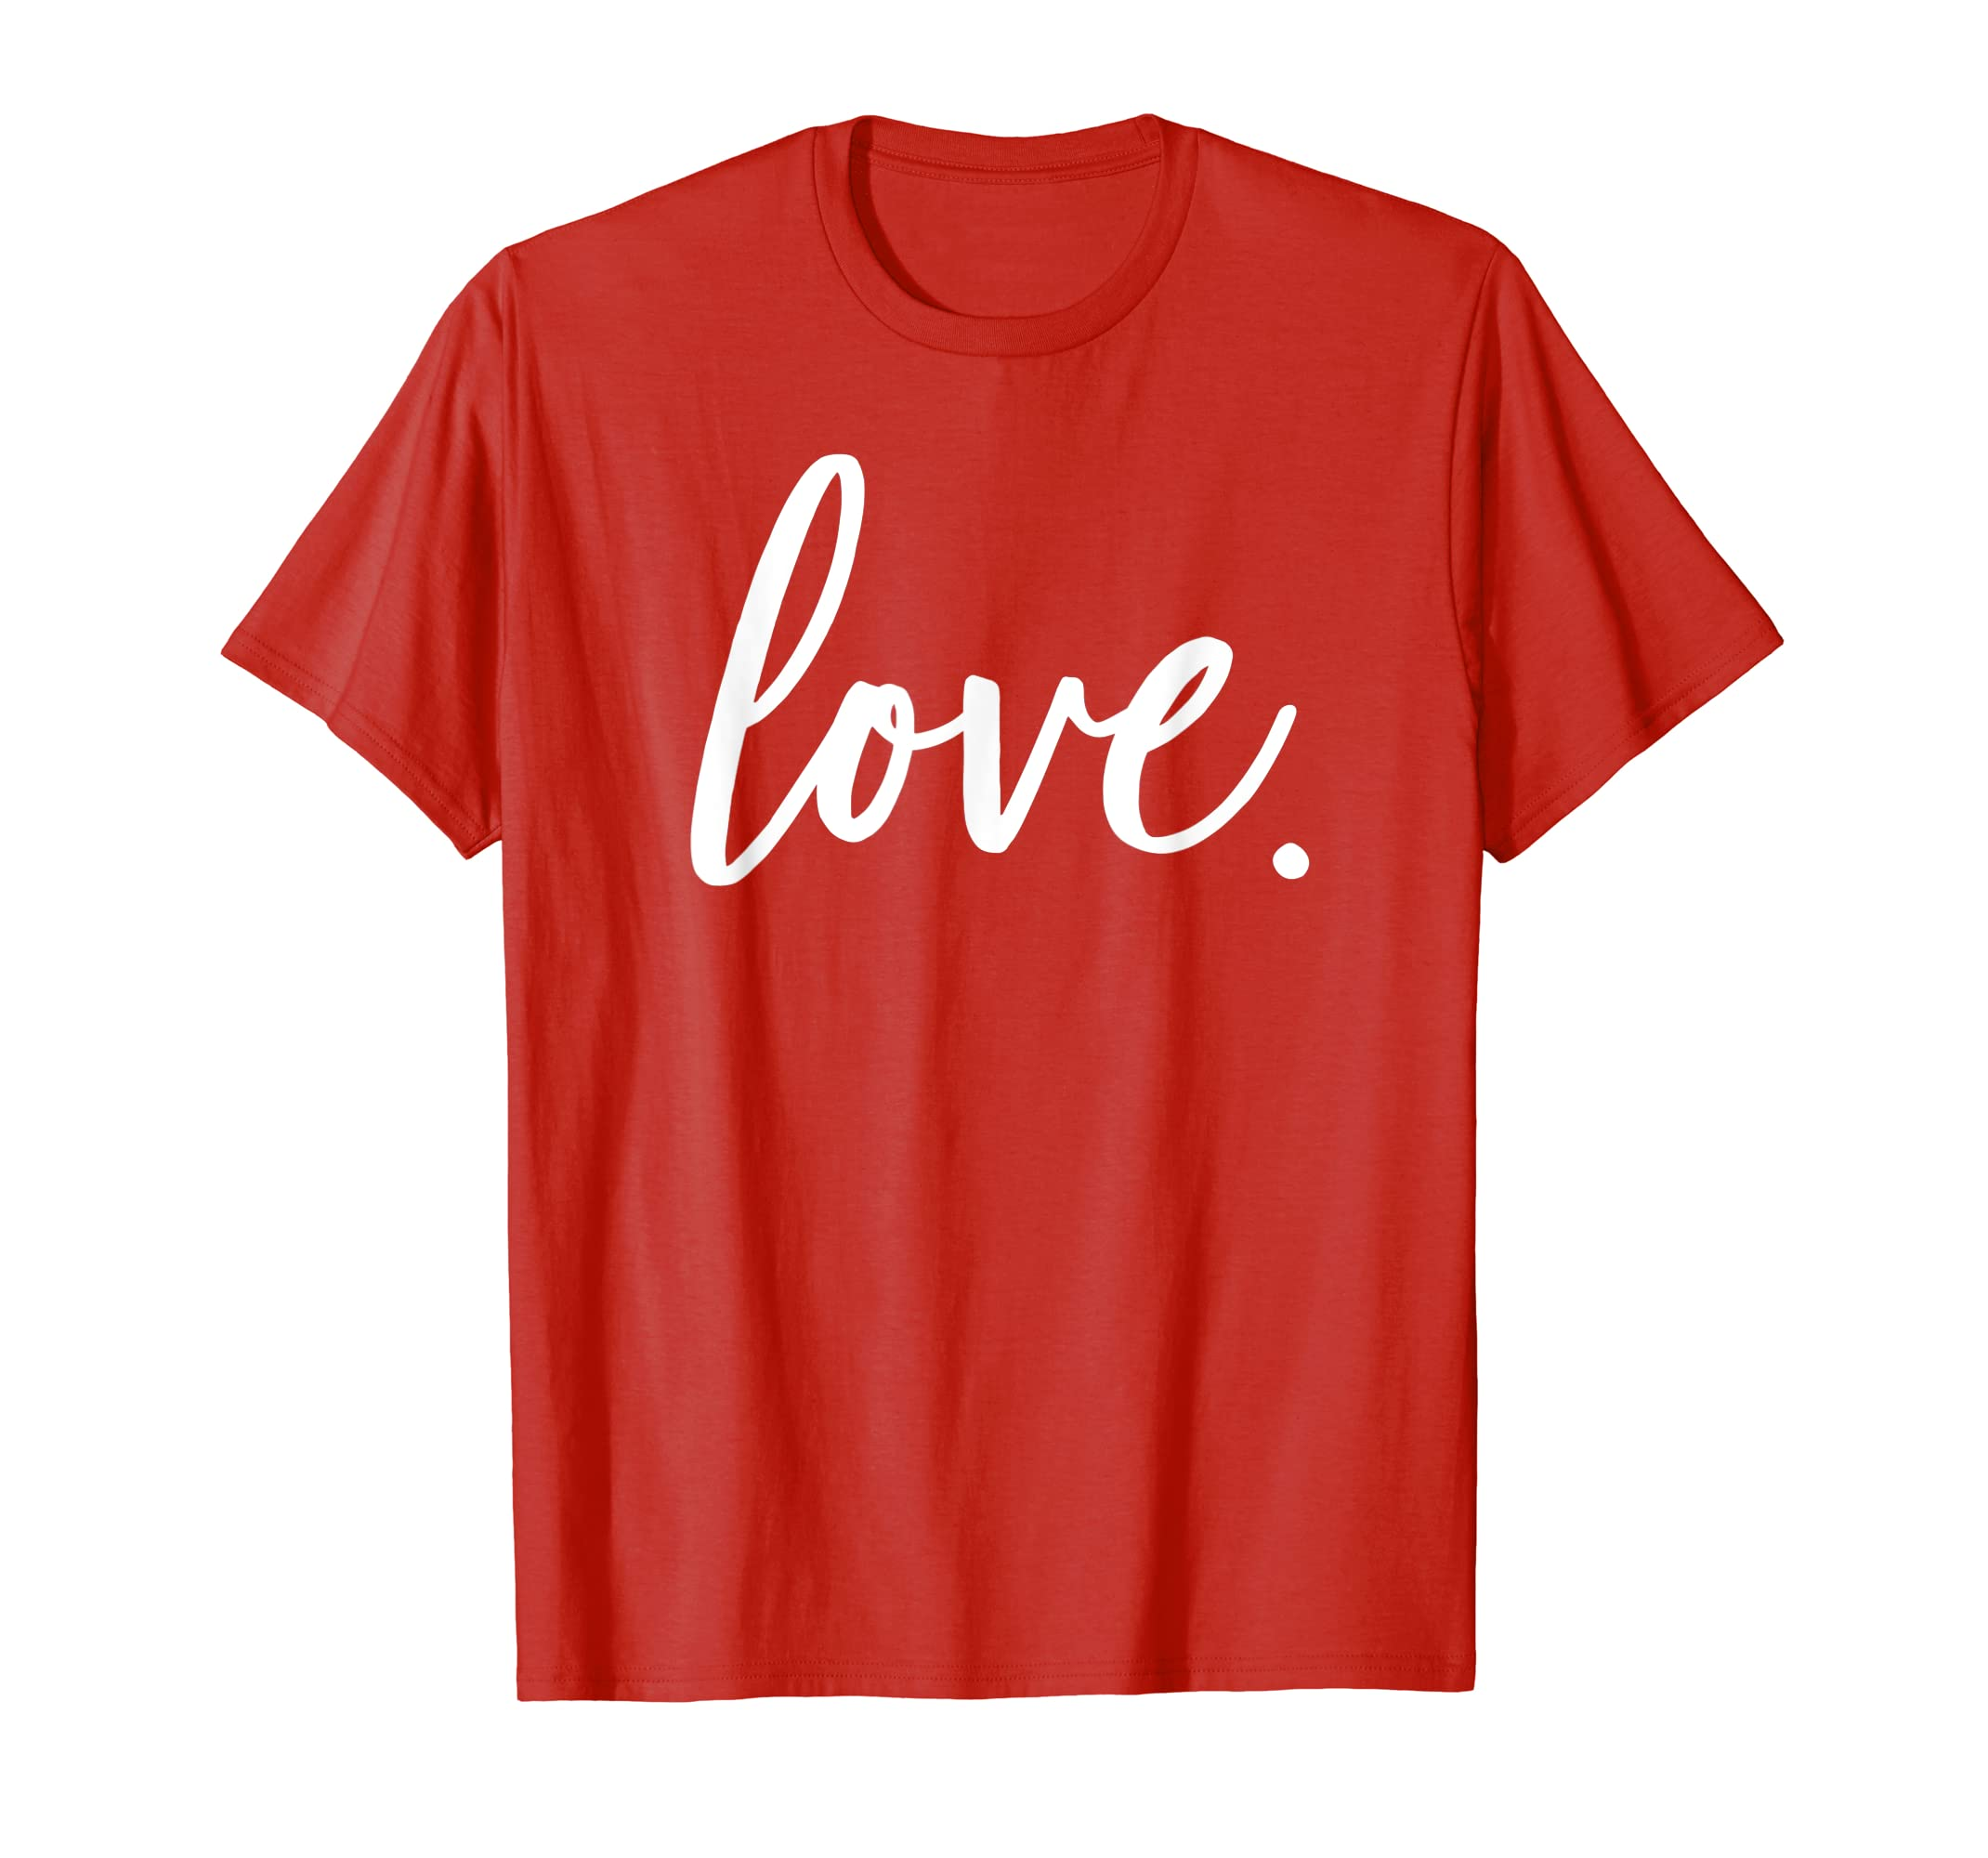 c8acc9e67 Amazon.com: Cute Cursive Love Valentines Day Red T Shirt Top For Women:  Clothing